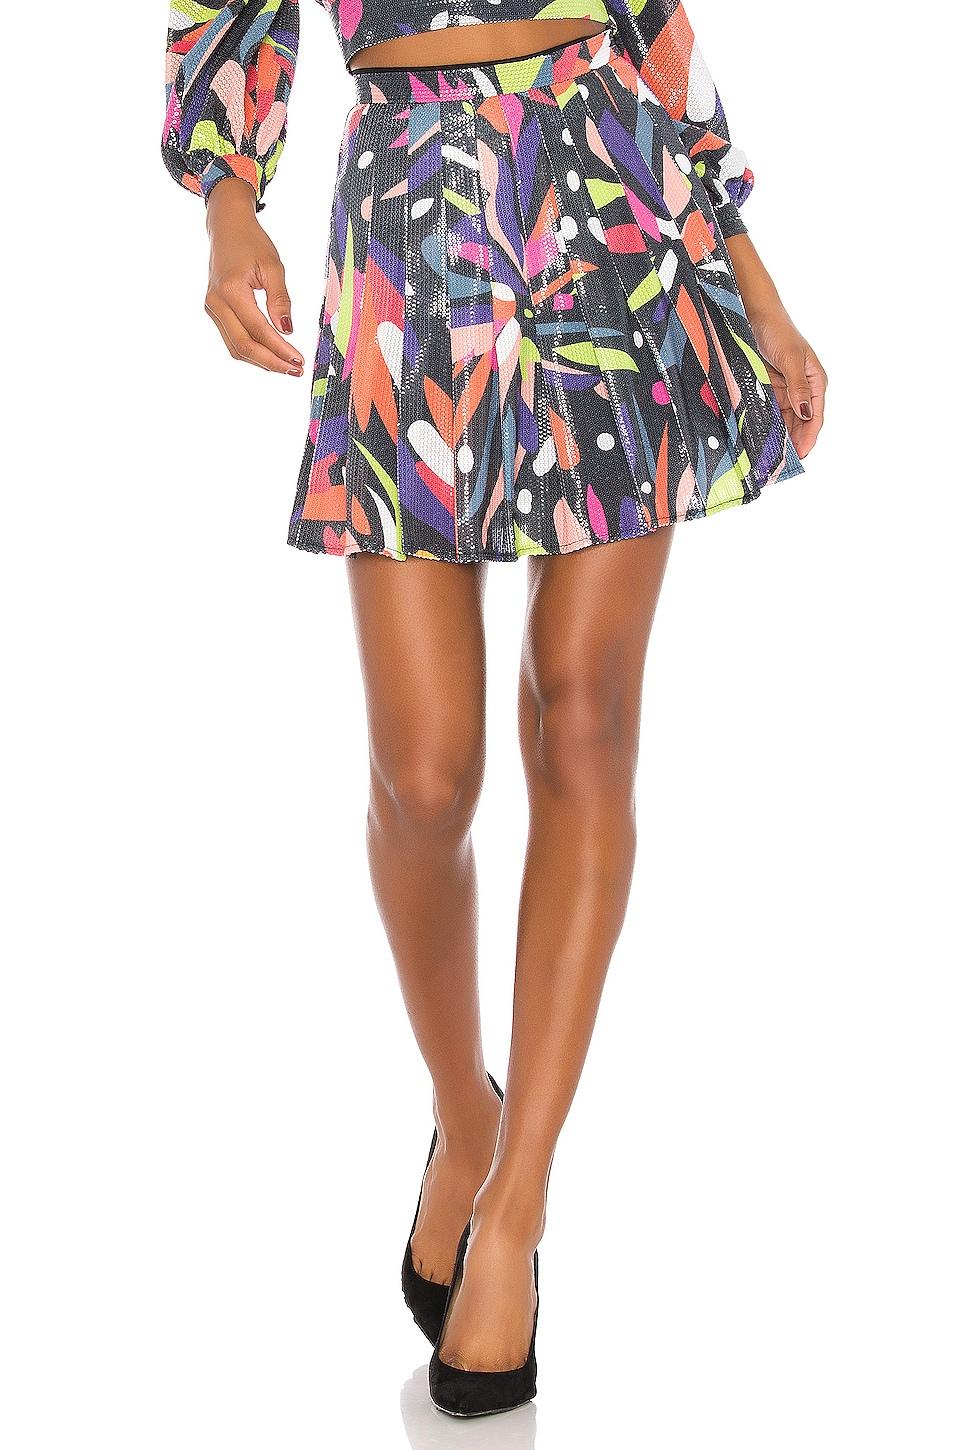 Olivia Rubin Poppy Skirt in Abstract Floral